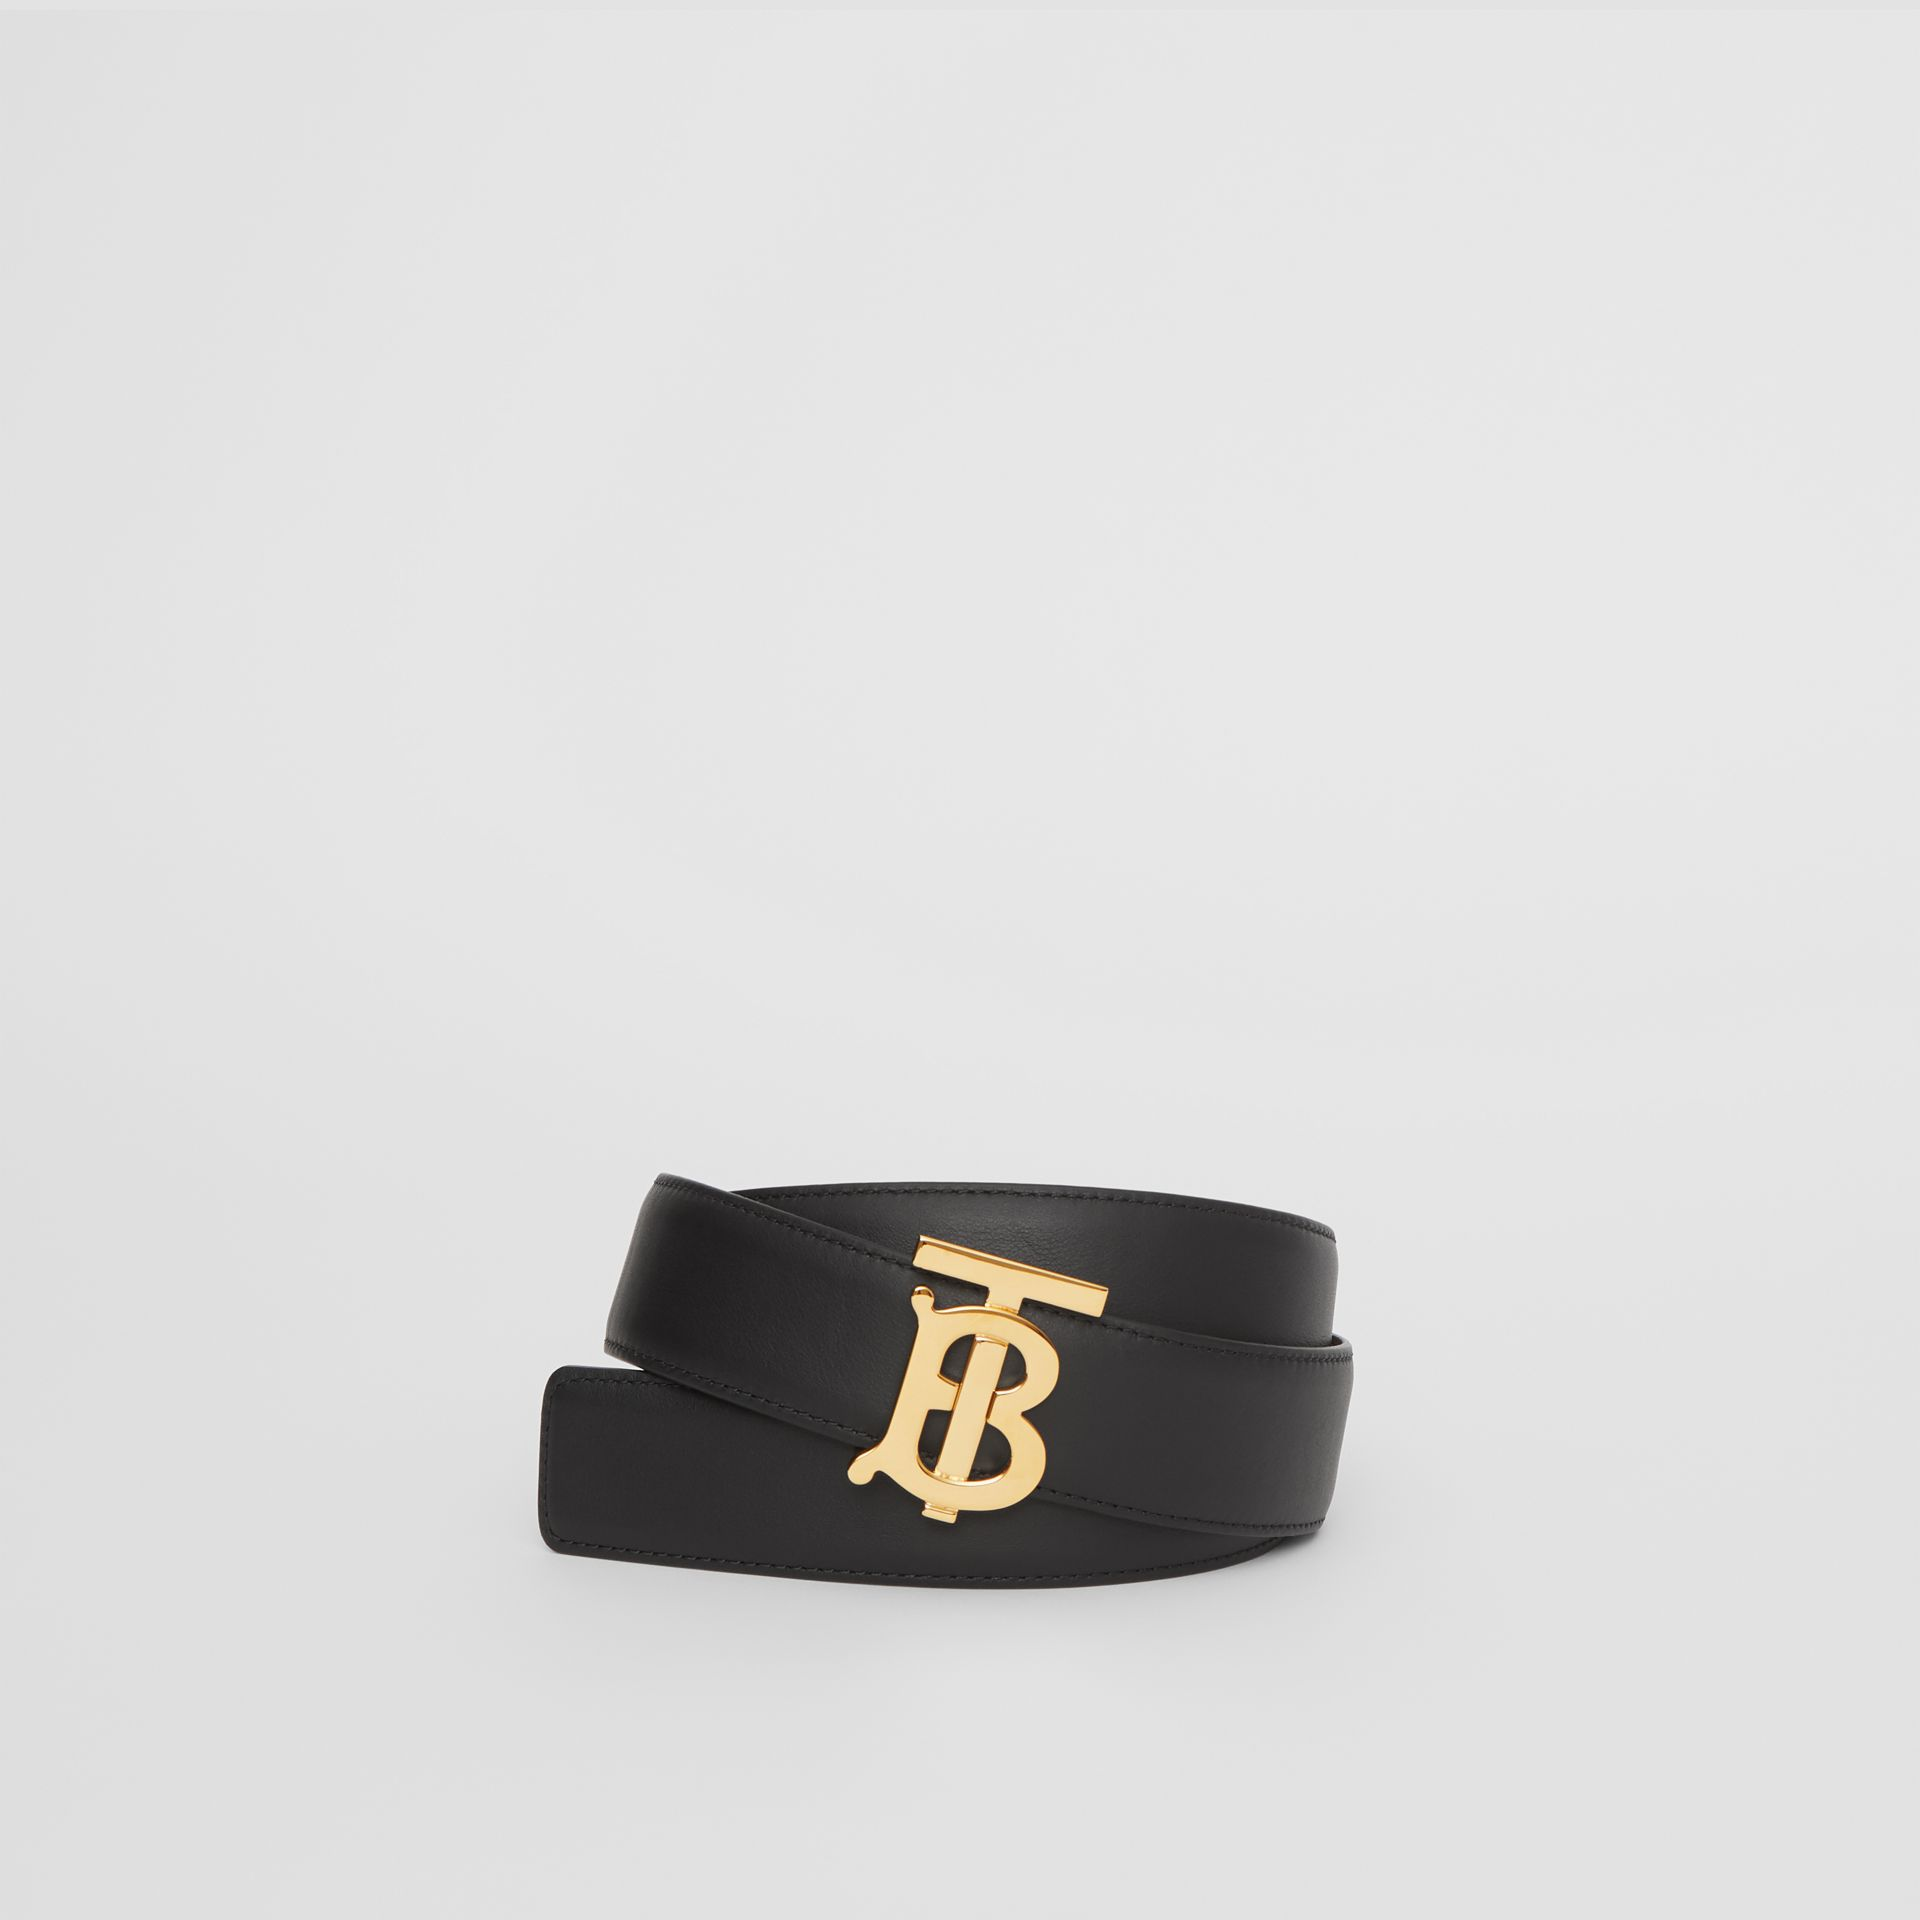 Reversible Monogram Motif Leather Belt in Black/malt Brown - Women | Burberry Canada - gallery image 0